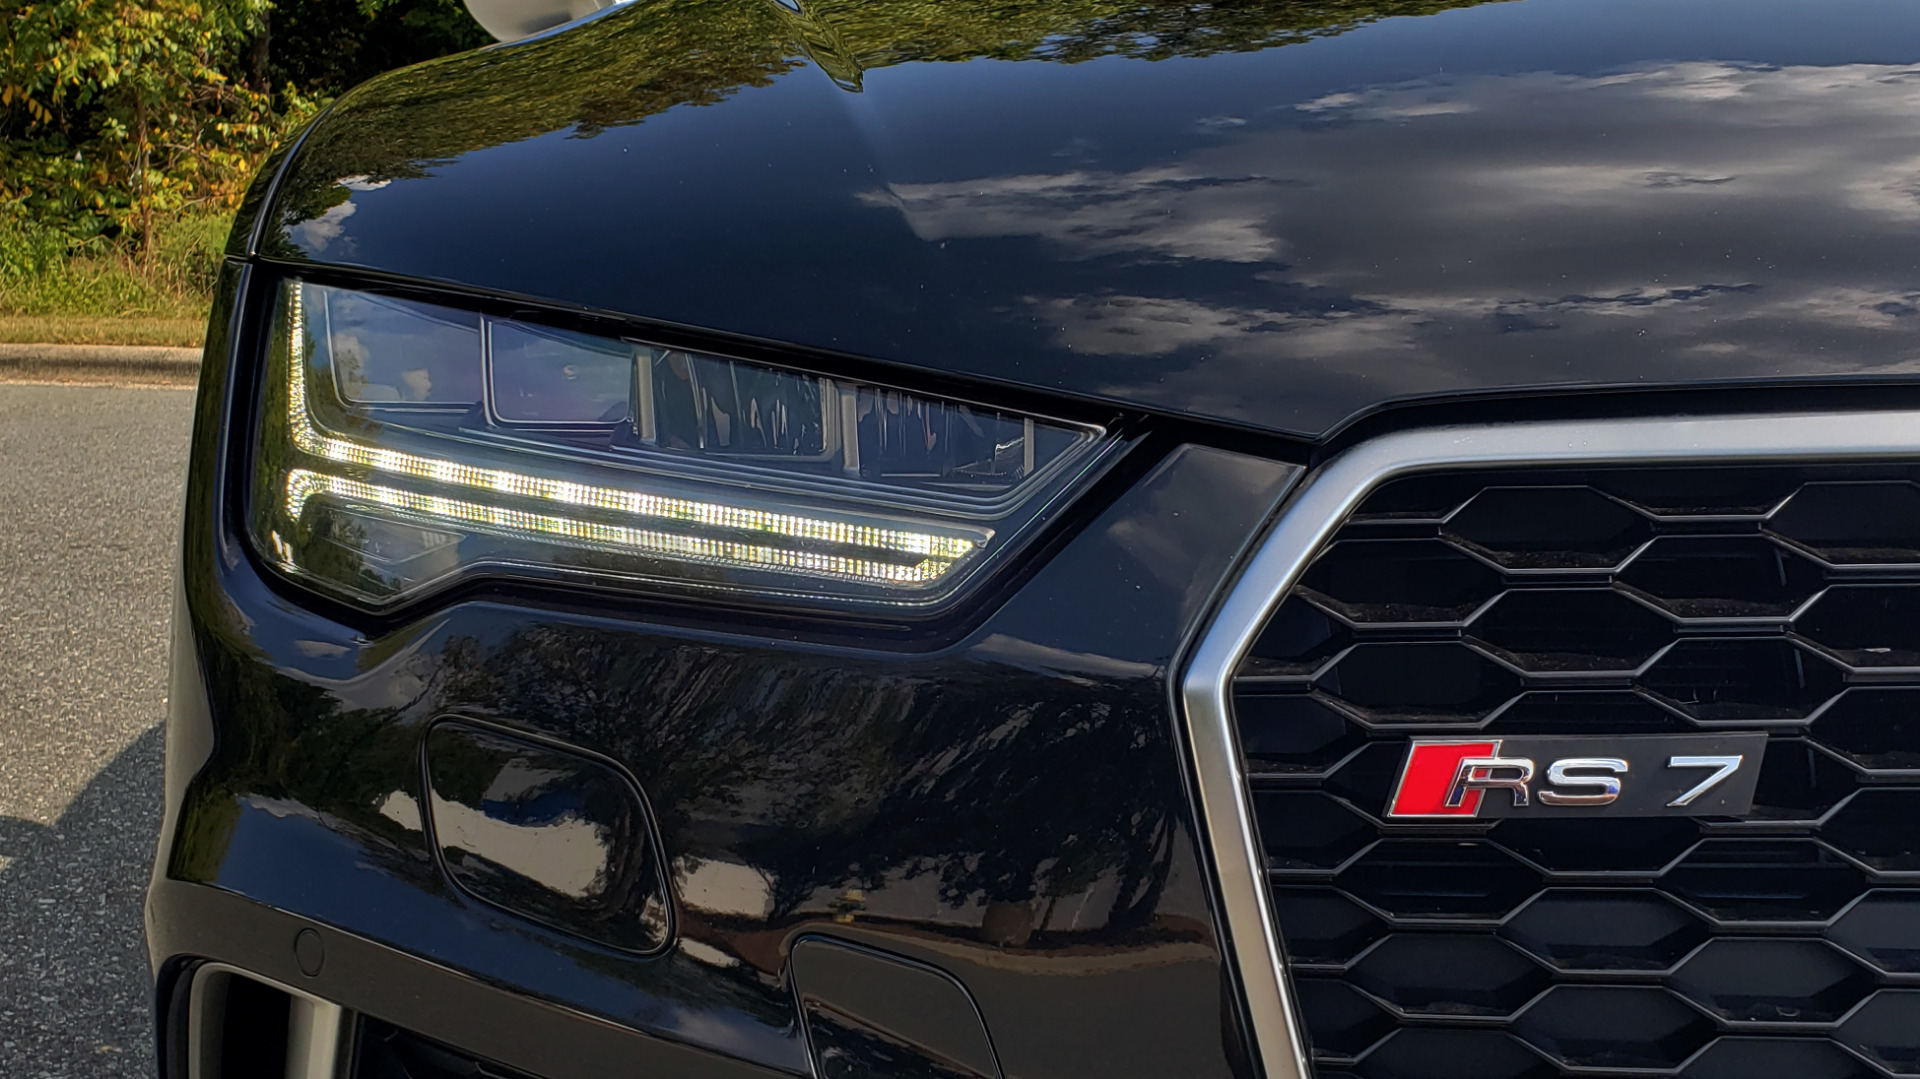 Used 2016 Audi RS 7 PRESTIGE / NAV / SUNROOF / BOSE / CAMERA / HTD STS for sale Sold at Formula Imports in Charlotte NC 28227 24